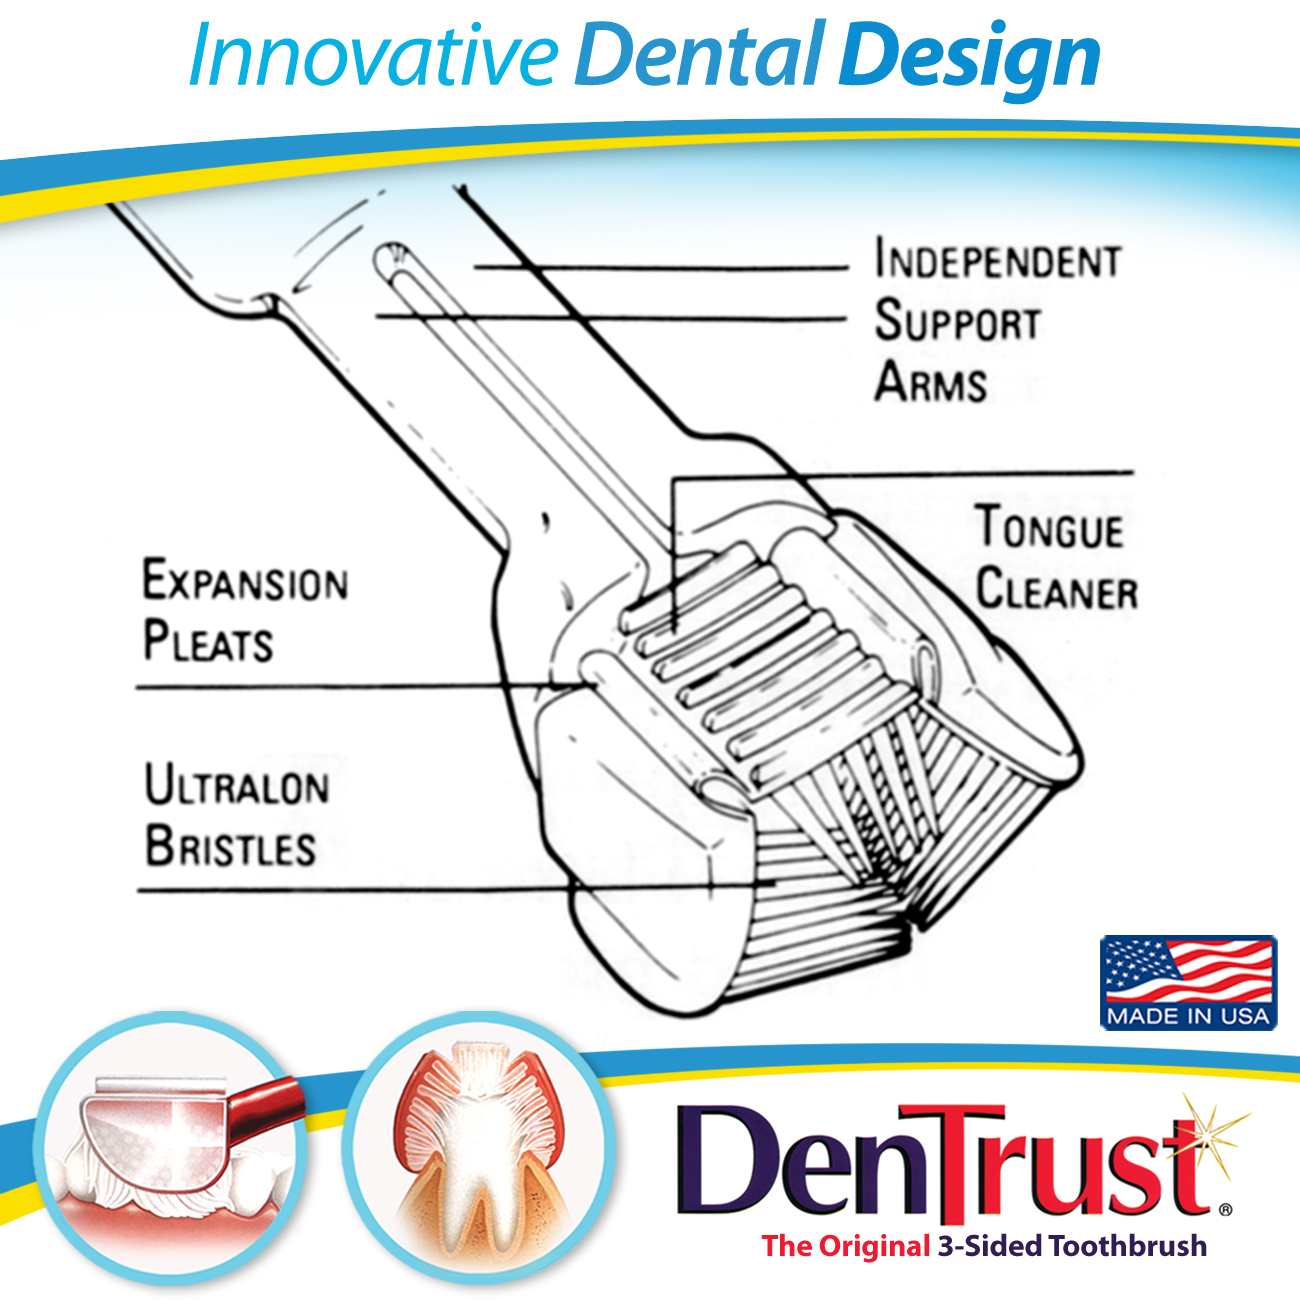 DenTrust 3-Sided Toothbrush :: Soft :: Wrap-Around Design for Complete Cleaning :: Fast, Easy & More Effective :: Clinically Proven